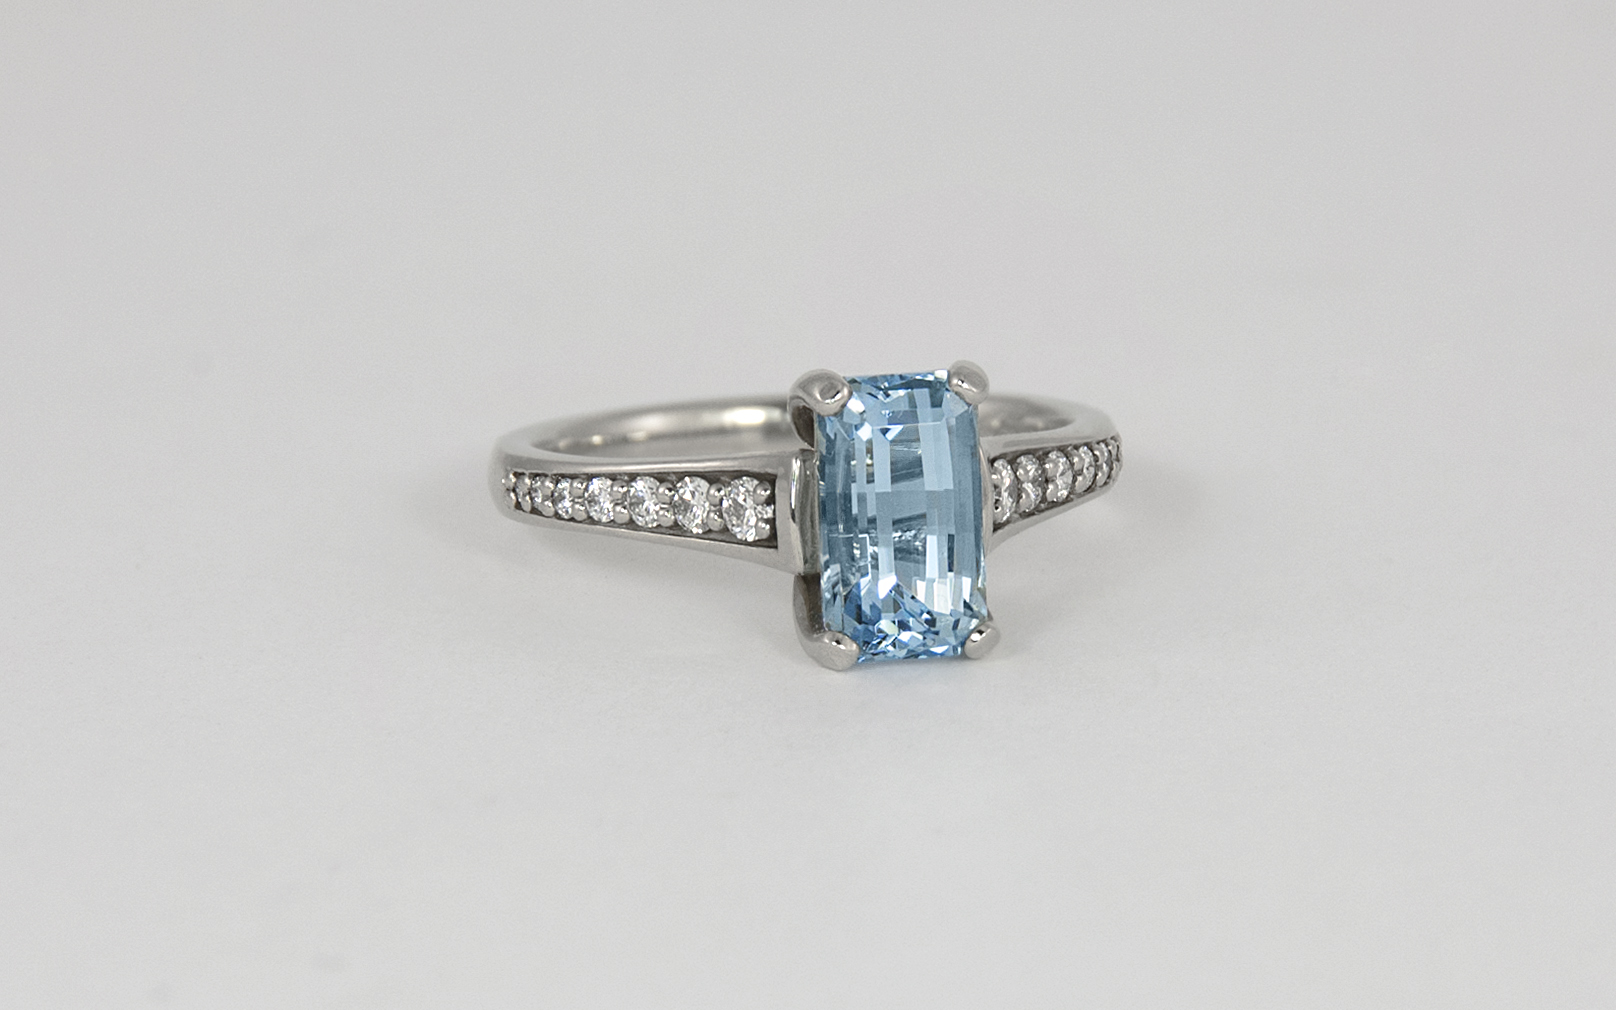 14KW Emerald Cut Aquamarine and Diamond Ring